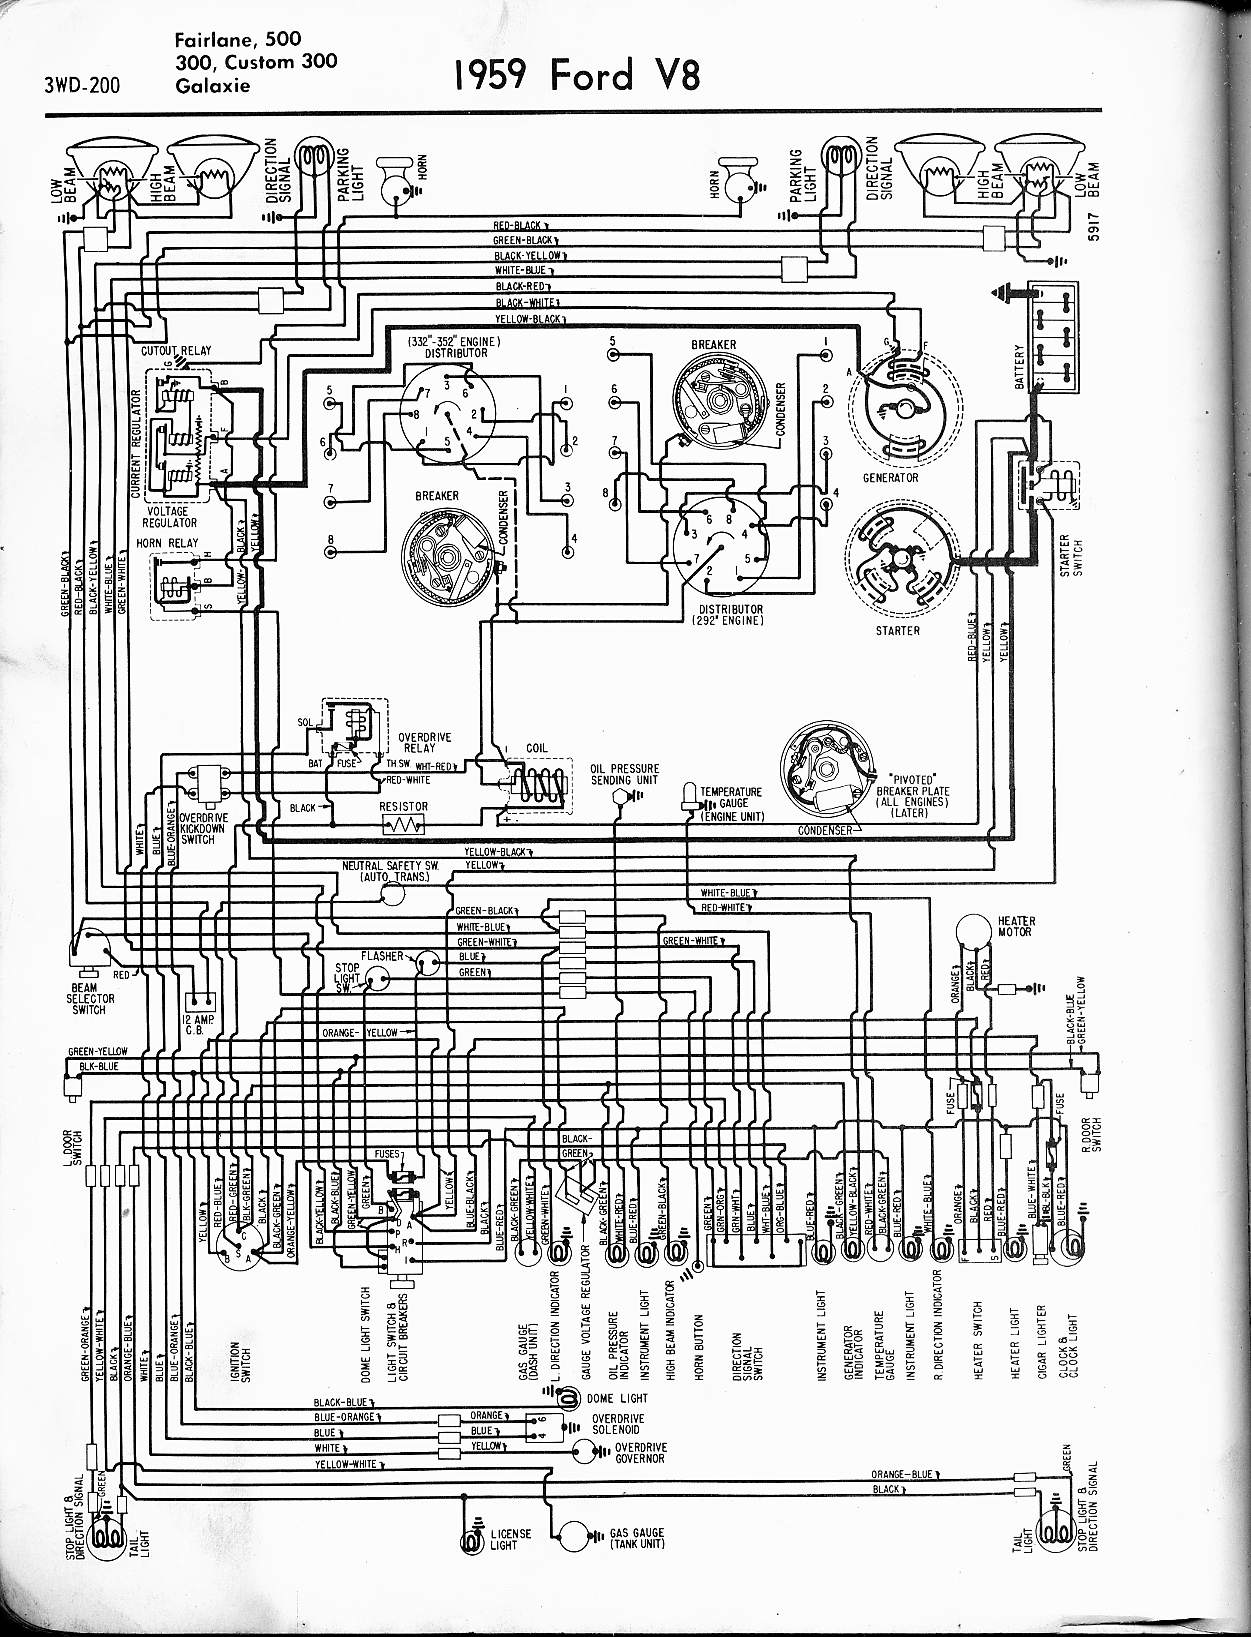 Schematics h as well Vw further Battery and charging system as well 1963 F100 Signal Wiring Diagram as well Diagrams. on ignition switch wiring diagram 66 fairlane